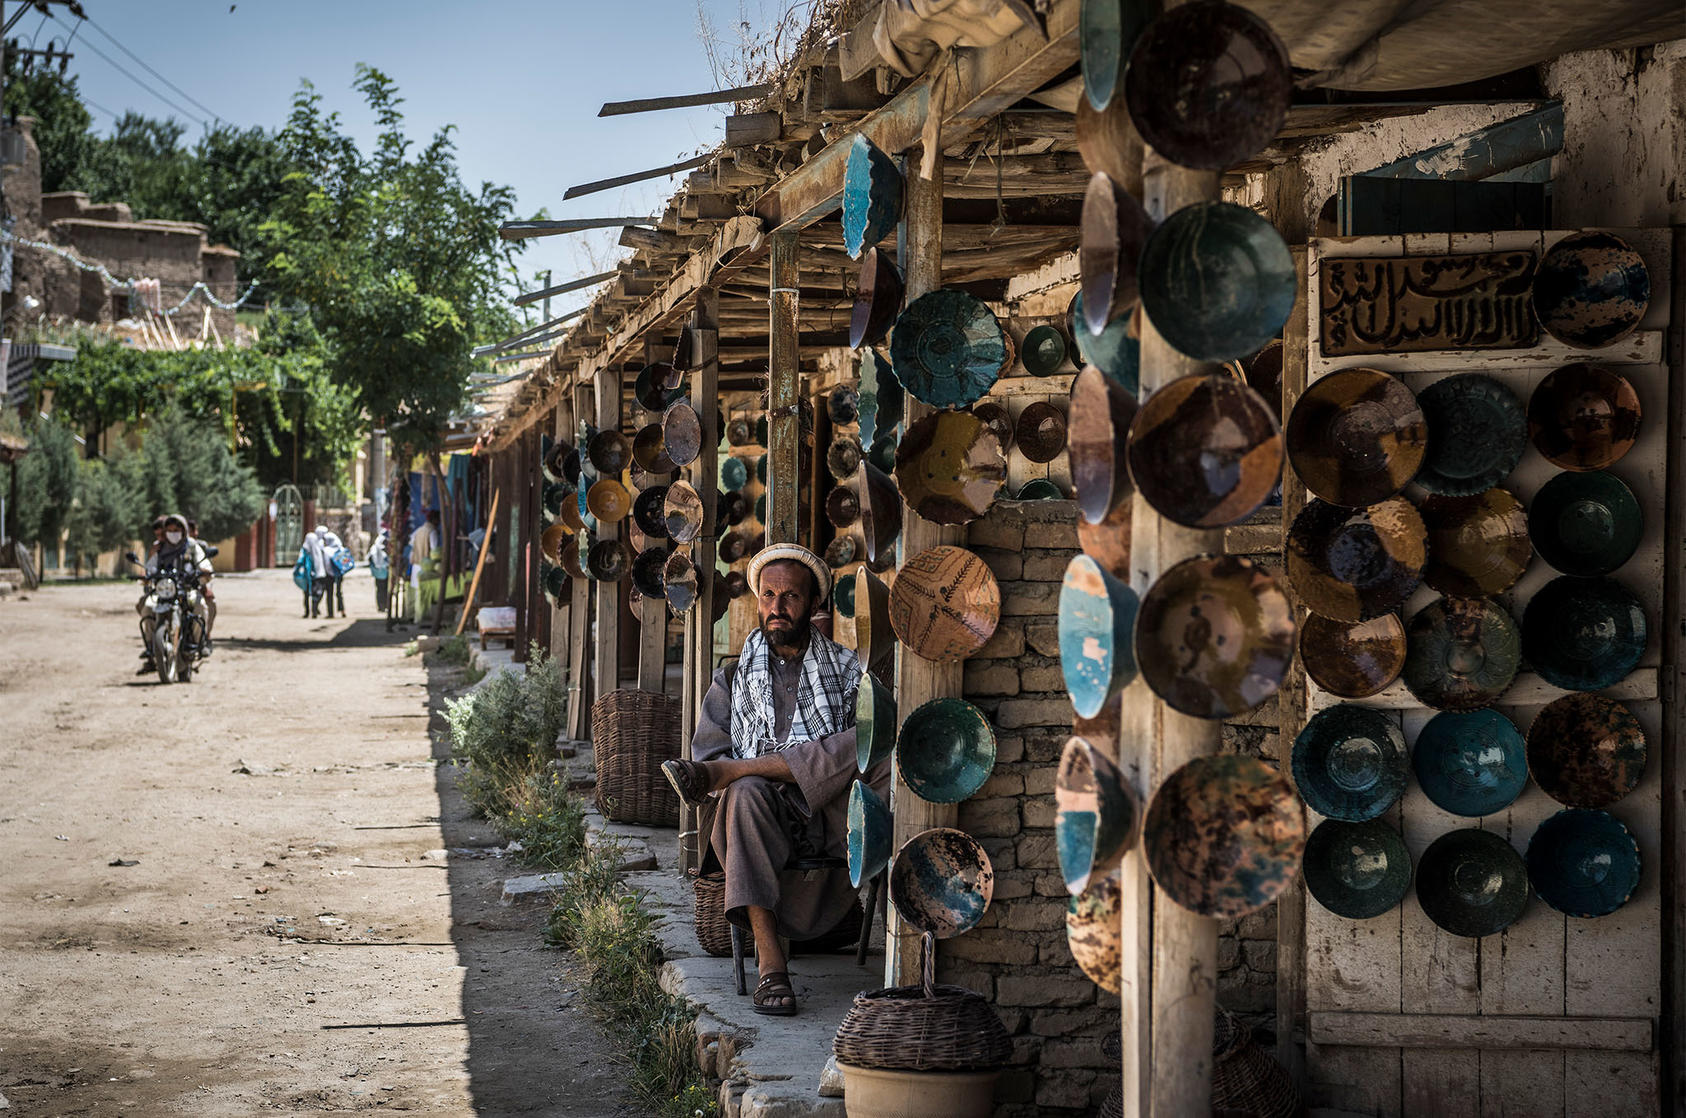 Shops on the main street through Istalif, Afghanistan, where they make distinctive turquoise pottery, June 30, 2016. (Sergey Ponomarev/The New York Times)